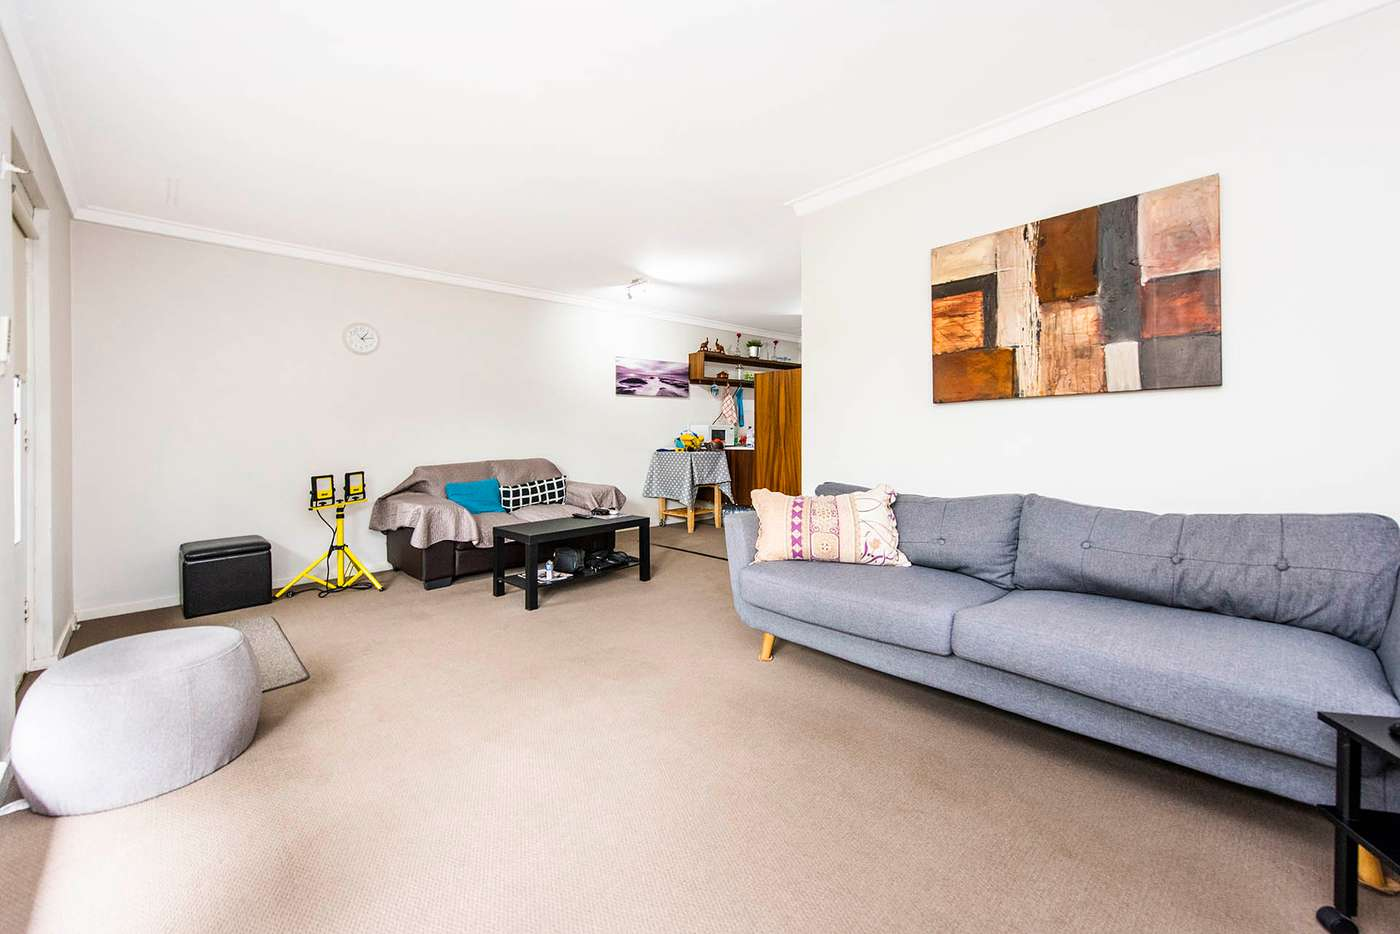 Sixth view of Homely villa listing, 17/87 Shakespeare Avenue, Yokine WA 6060